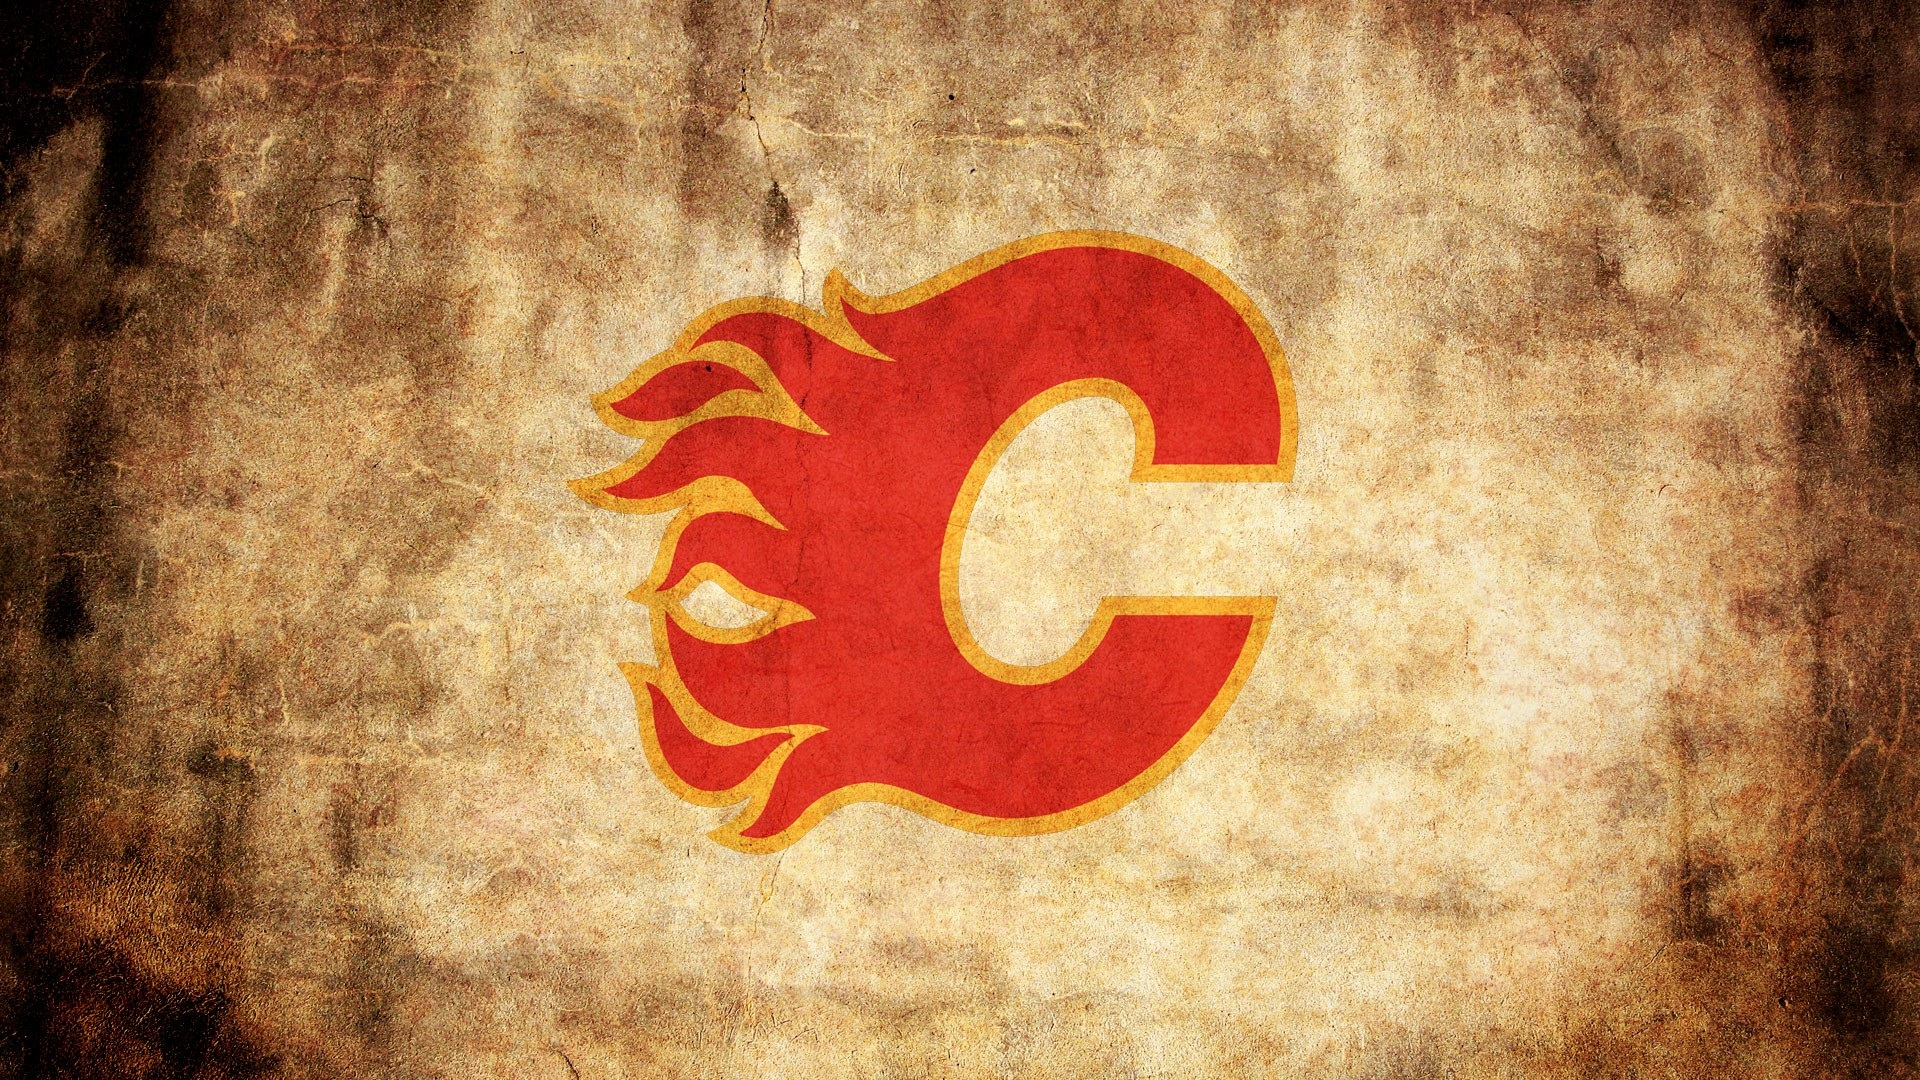 calgary-flames-wallpaper